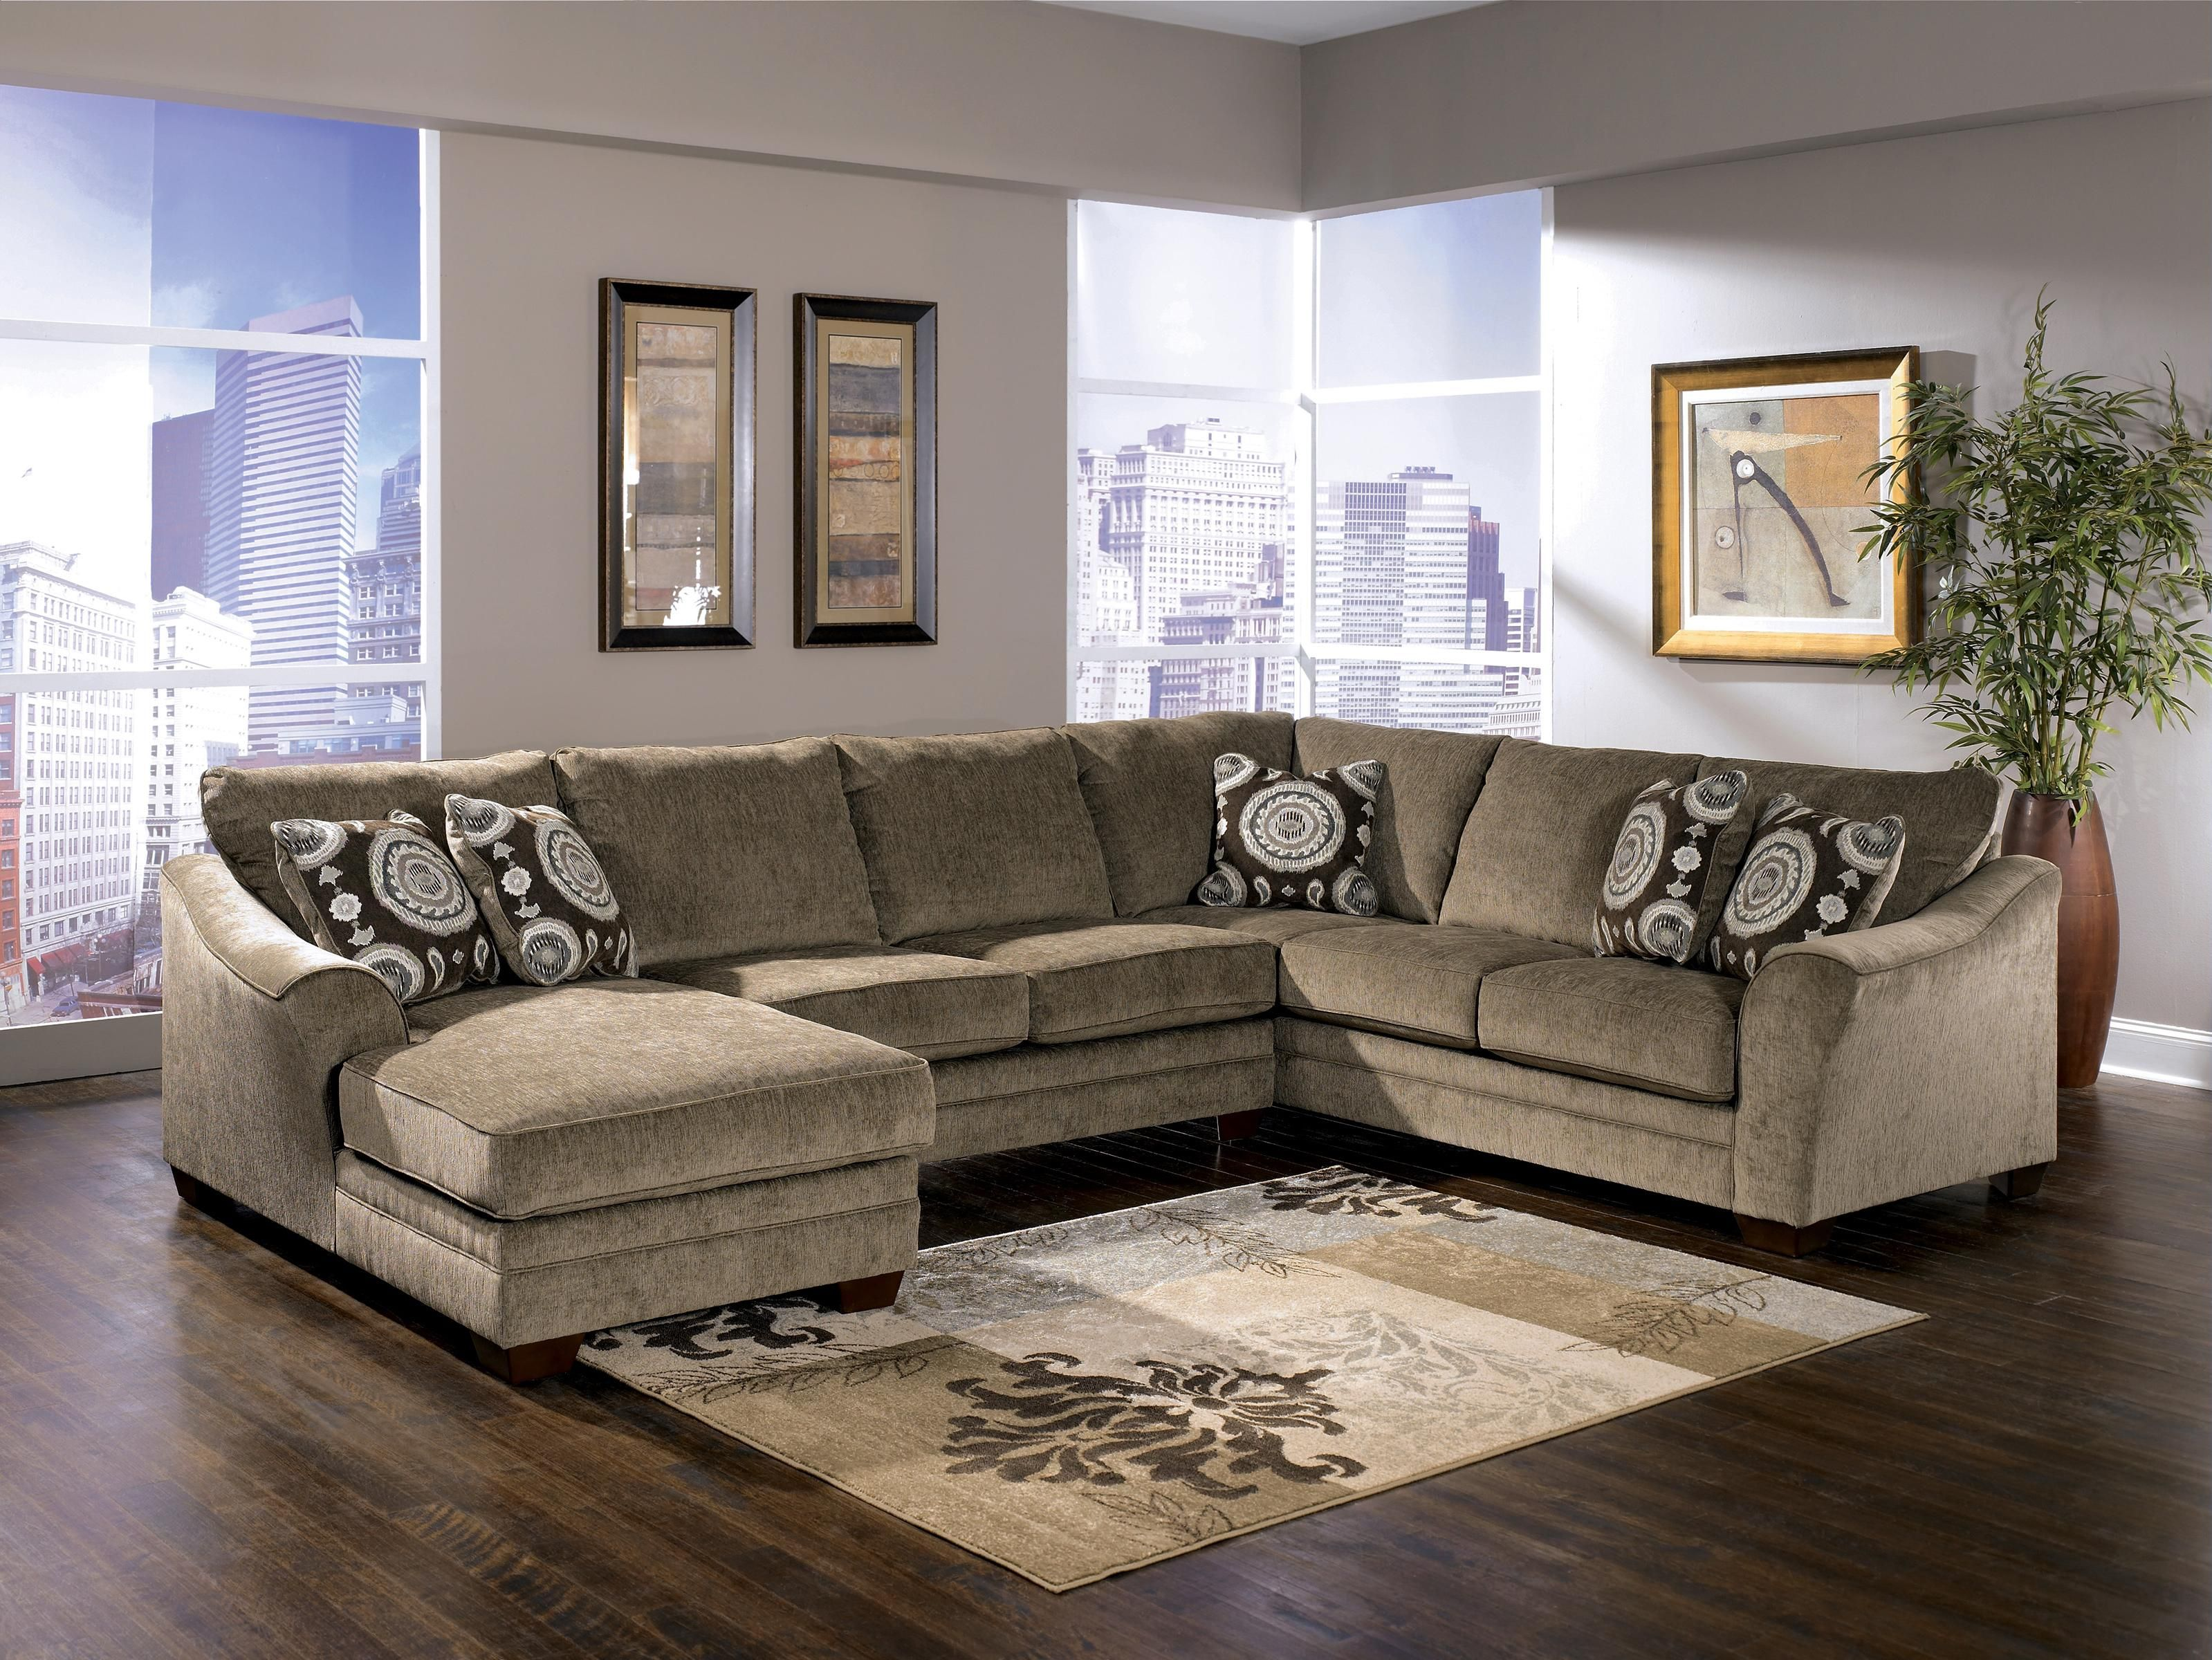 Signature Design By Ashley Cosmo Marble Sectional Sofa With Chaise Lounger Sectional Living Room Sets Sectional Sofa With Chaise Sectional Sofas Living Room